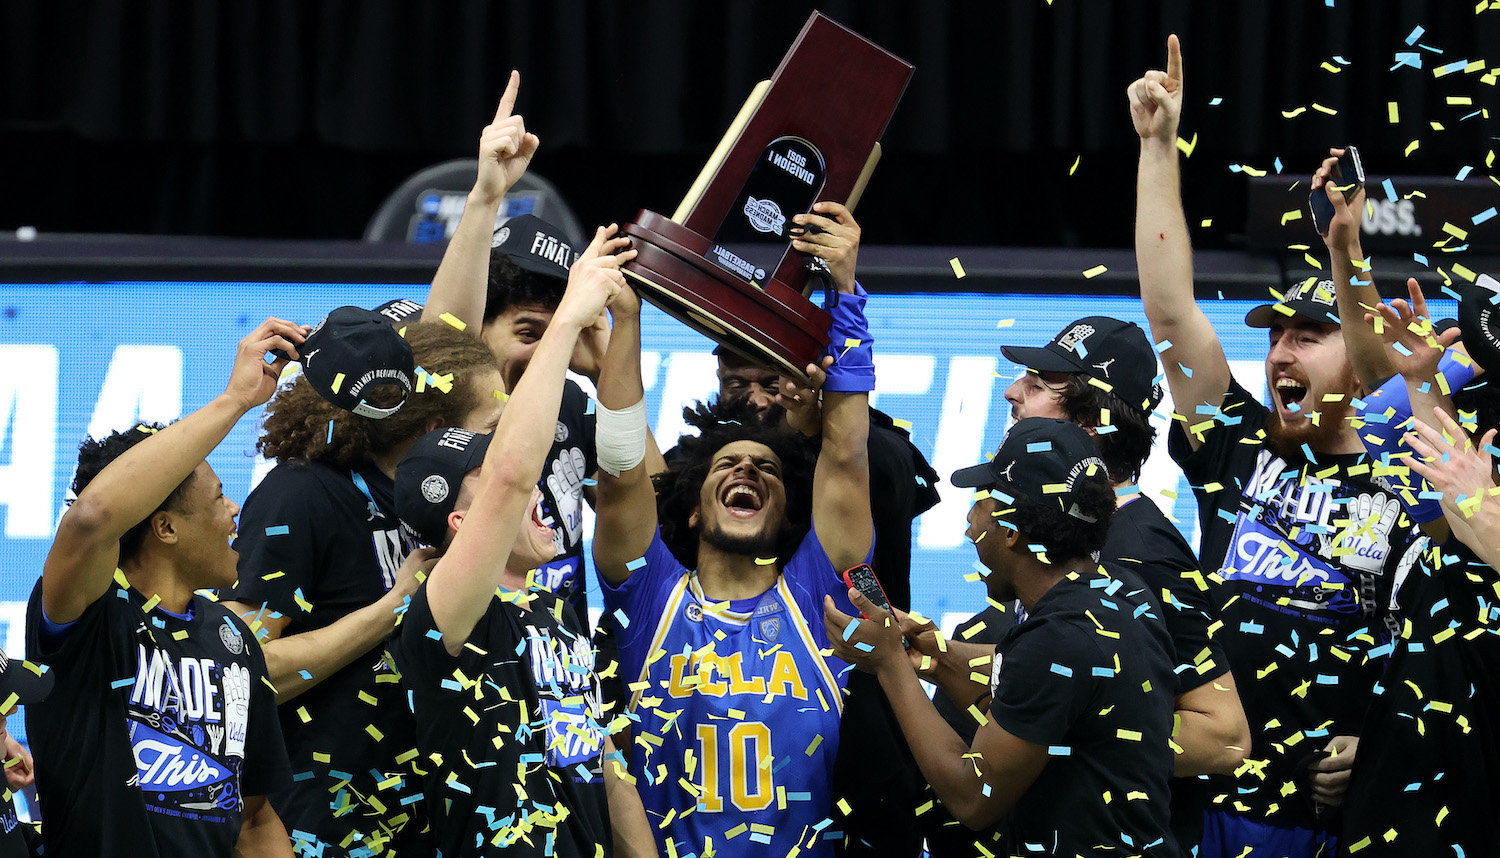 INDIANAPOLIS, INDIANA - MARCH 30: Tyger Campbell #10 of the UCLA Bruins celebrates with the East Regional Champion trophy after defeating the Michigan Wolverines 51-49 in the Elite Eight round game of the 2021 NCAA Men's Basketball Tournament at Lucas Oil Stadium on March 30, 2021 in Indianapolis, Indiana. (Photo by Andy Lyons/Getty Images)